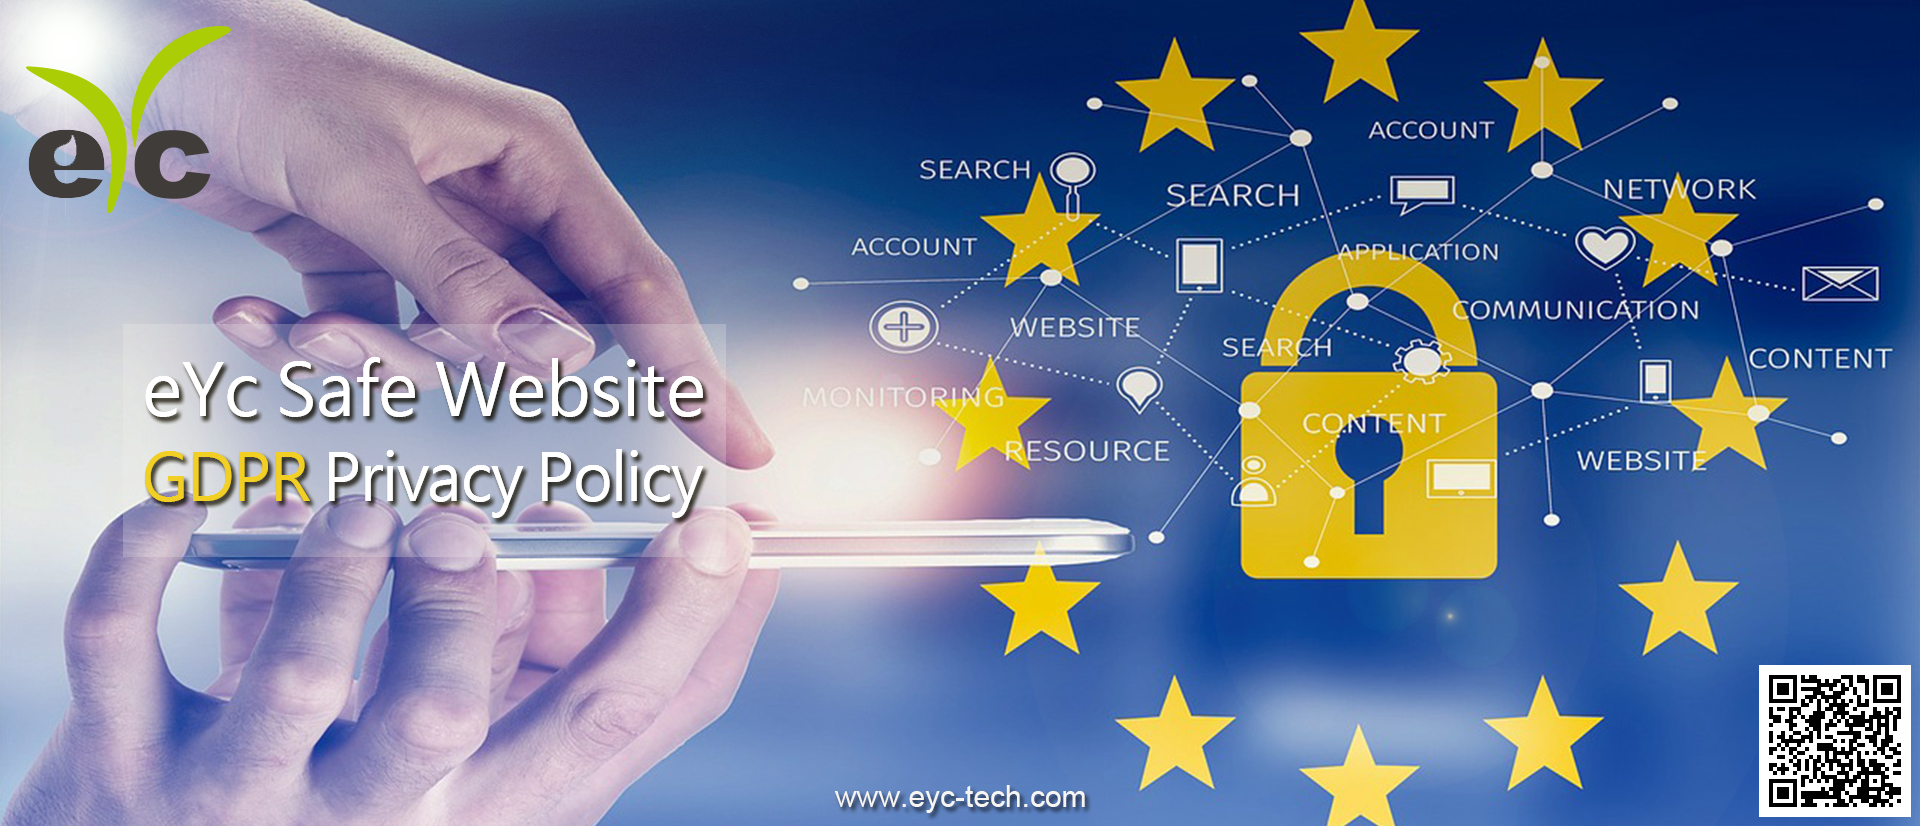 GDPR: eYc create a safe website to safeguard the privacy for customers